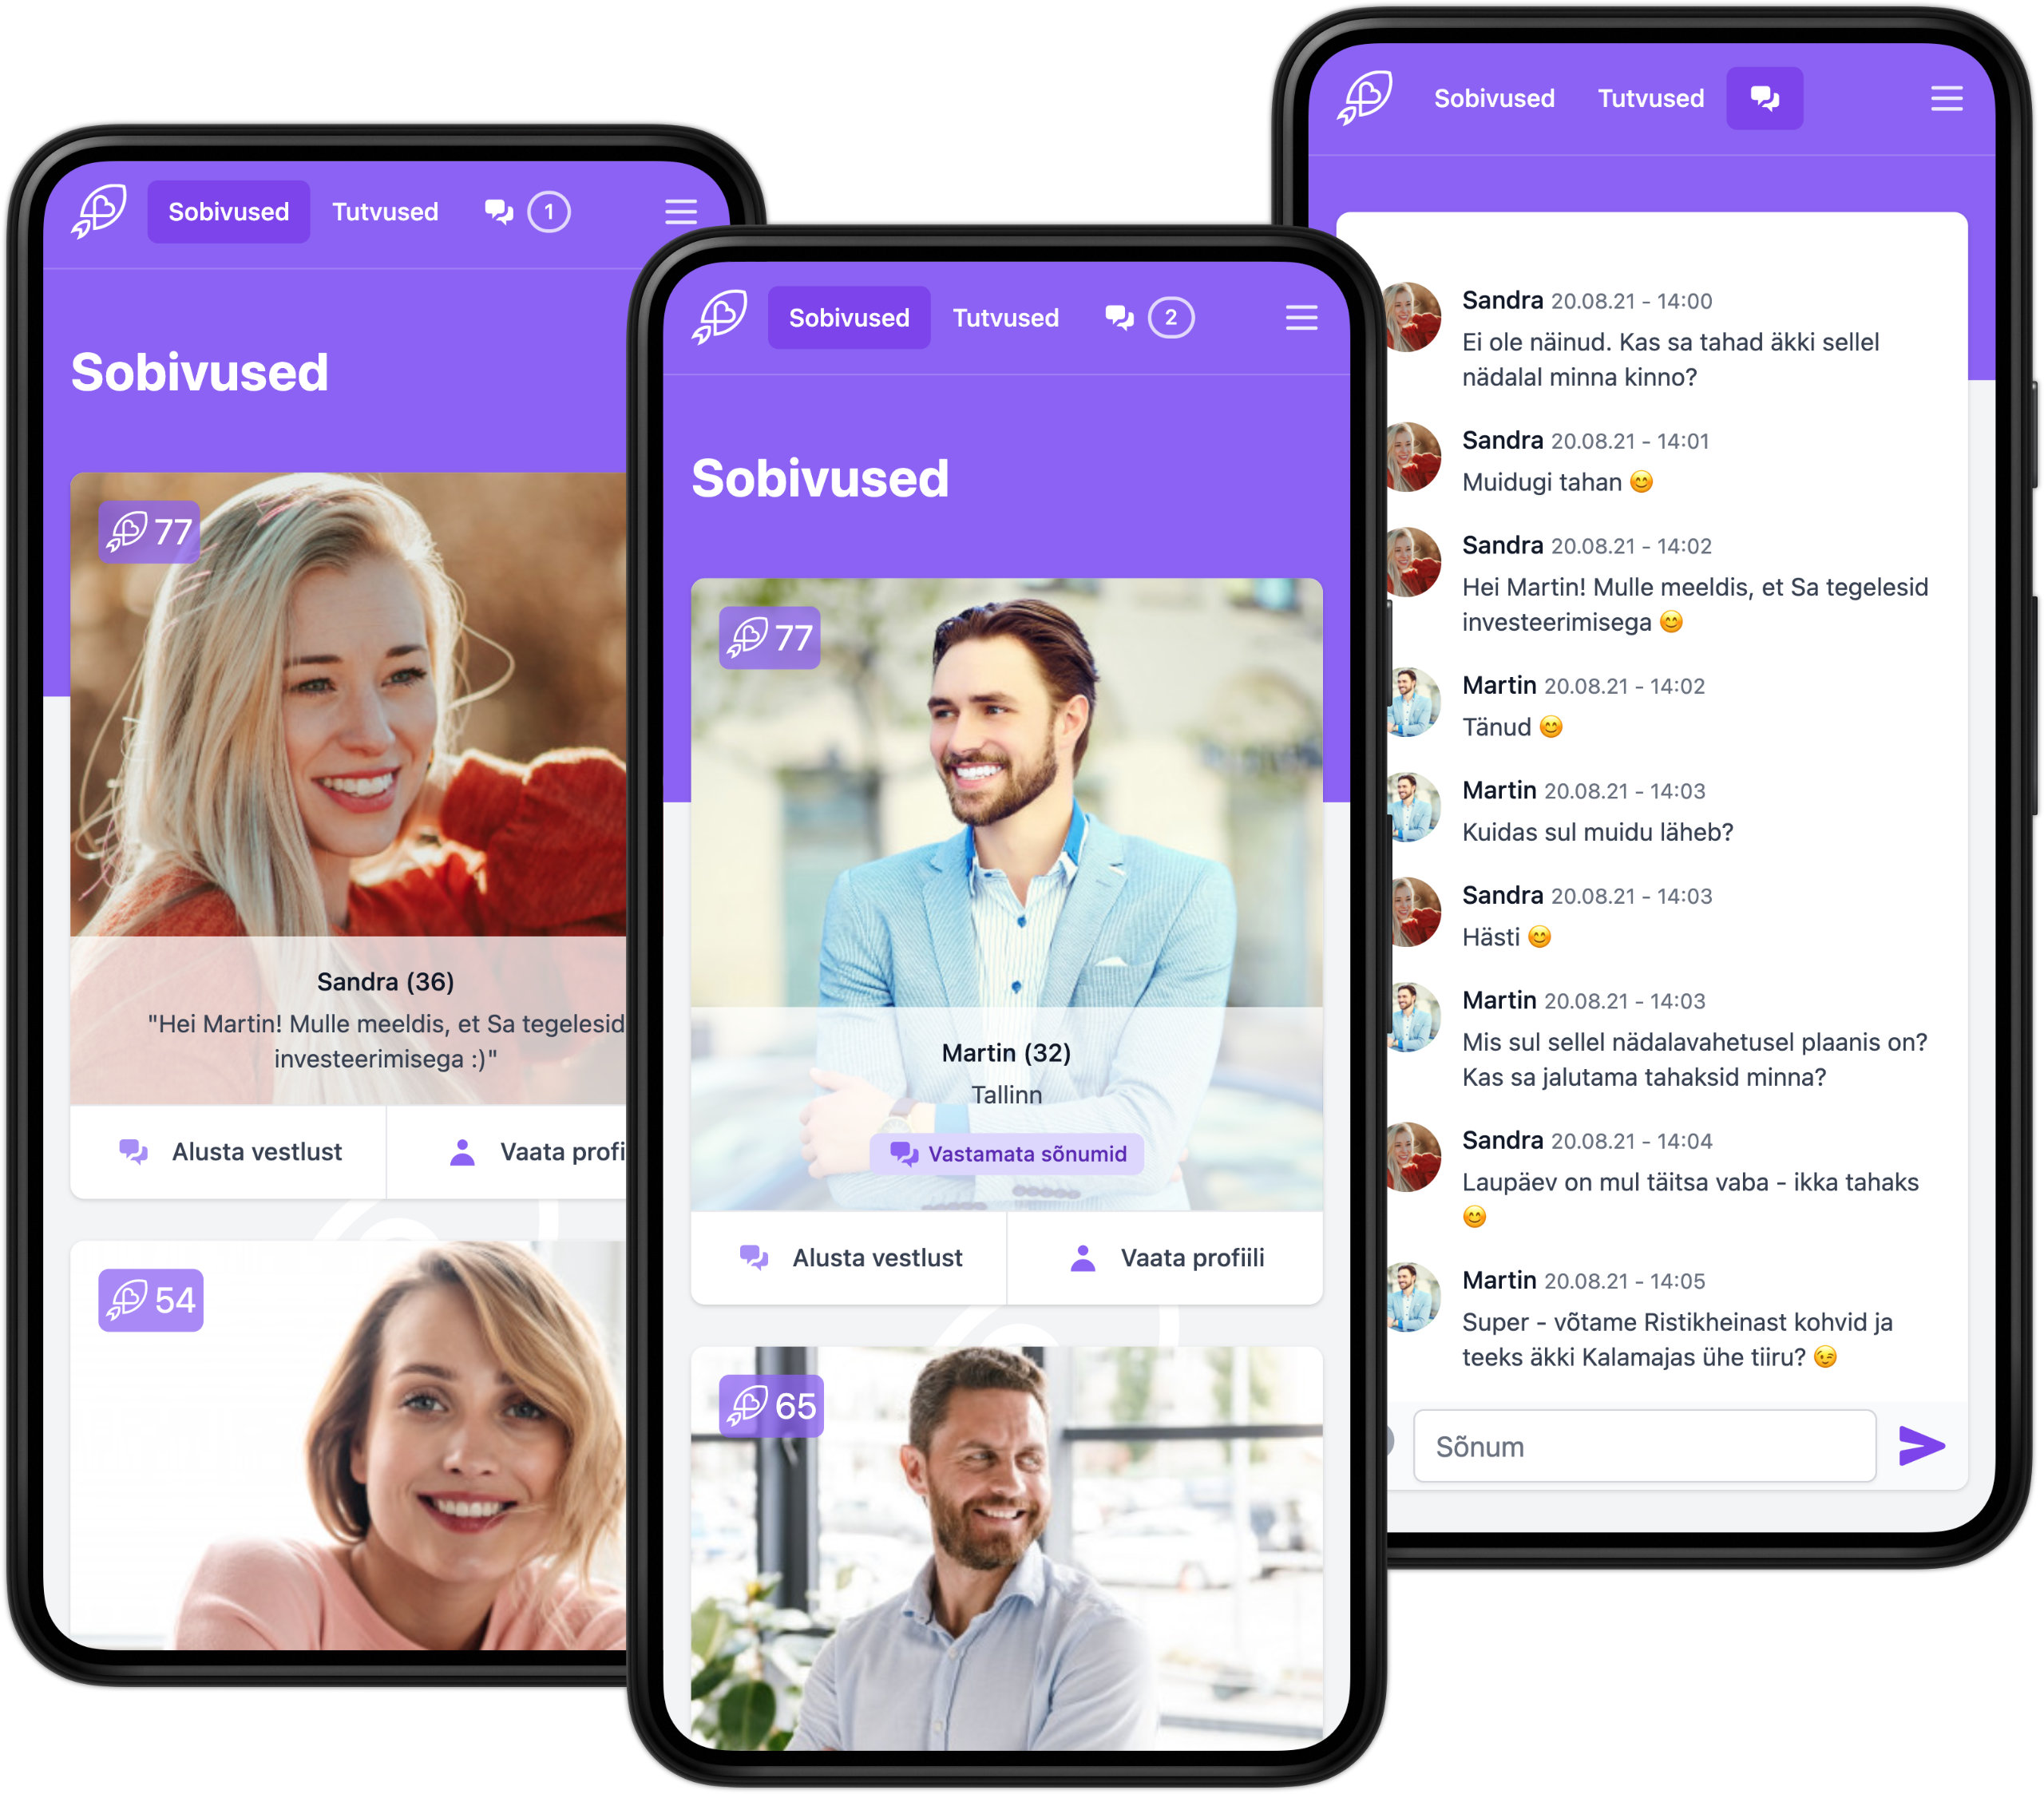 Mobile interface examples